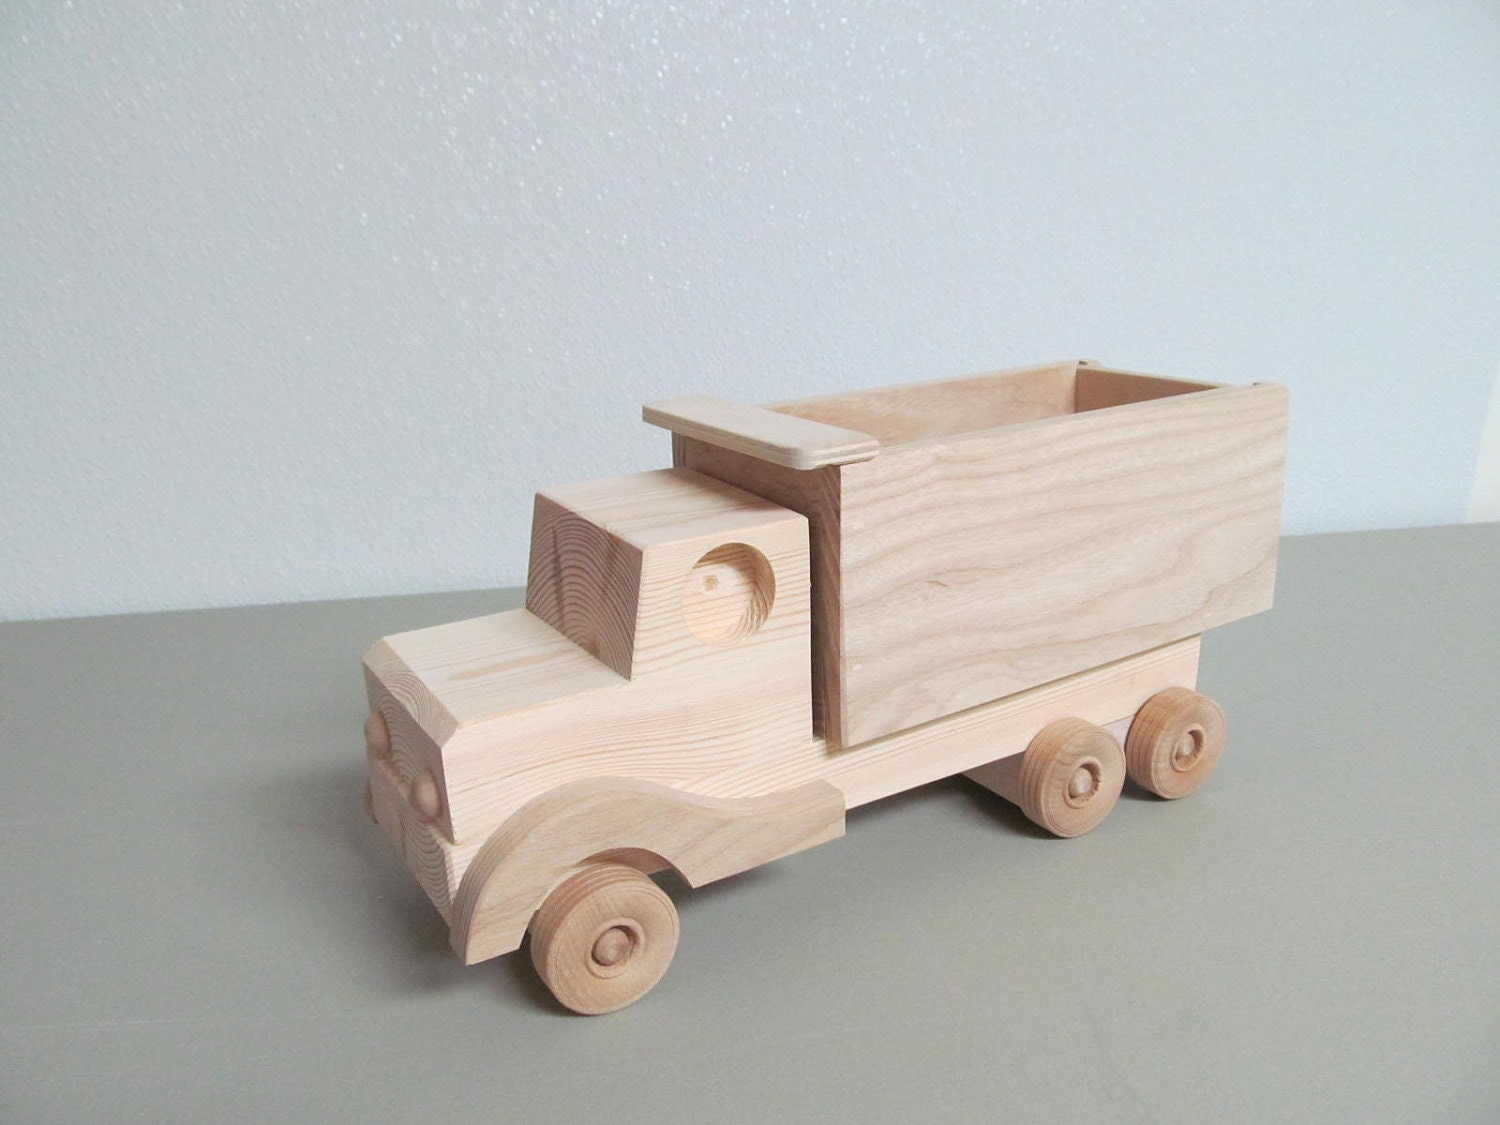 Wooden Toys Plans Free Trucks Quick Woodworking Projects